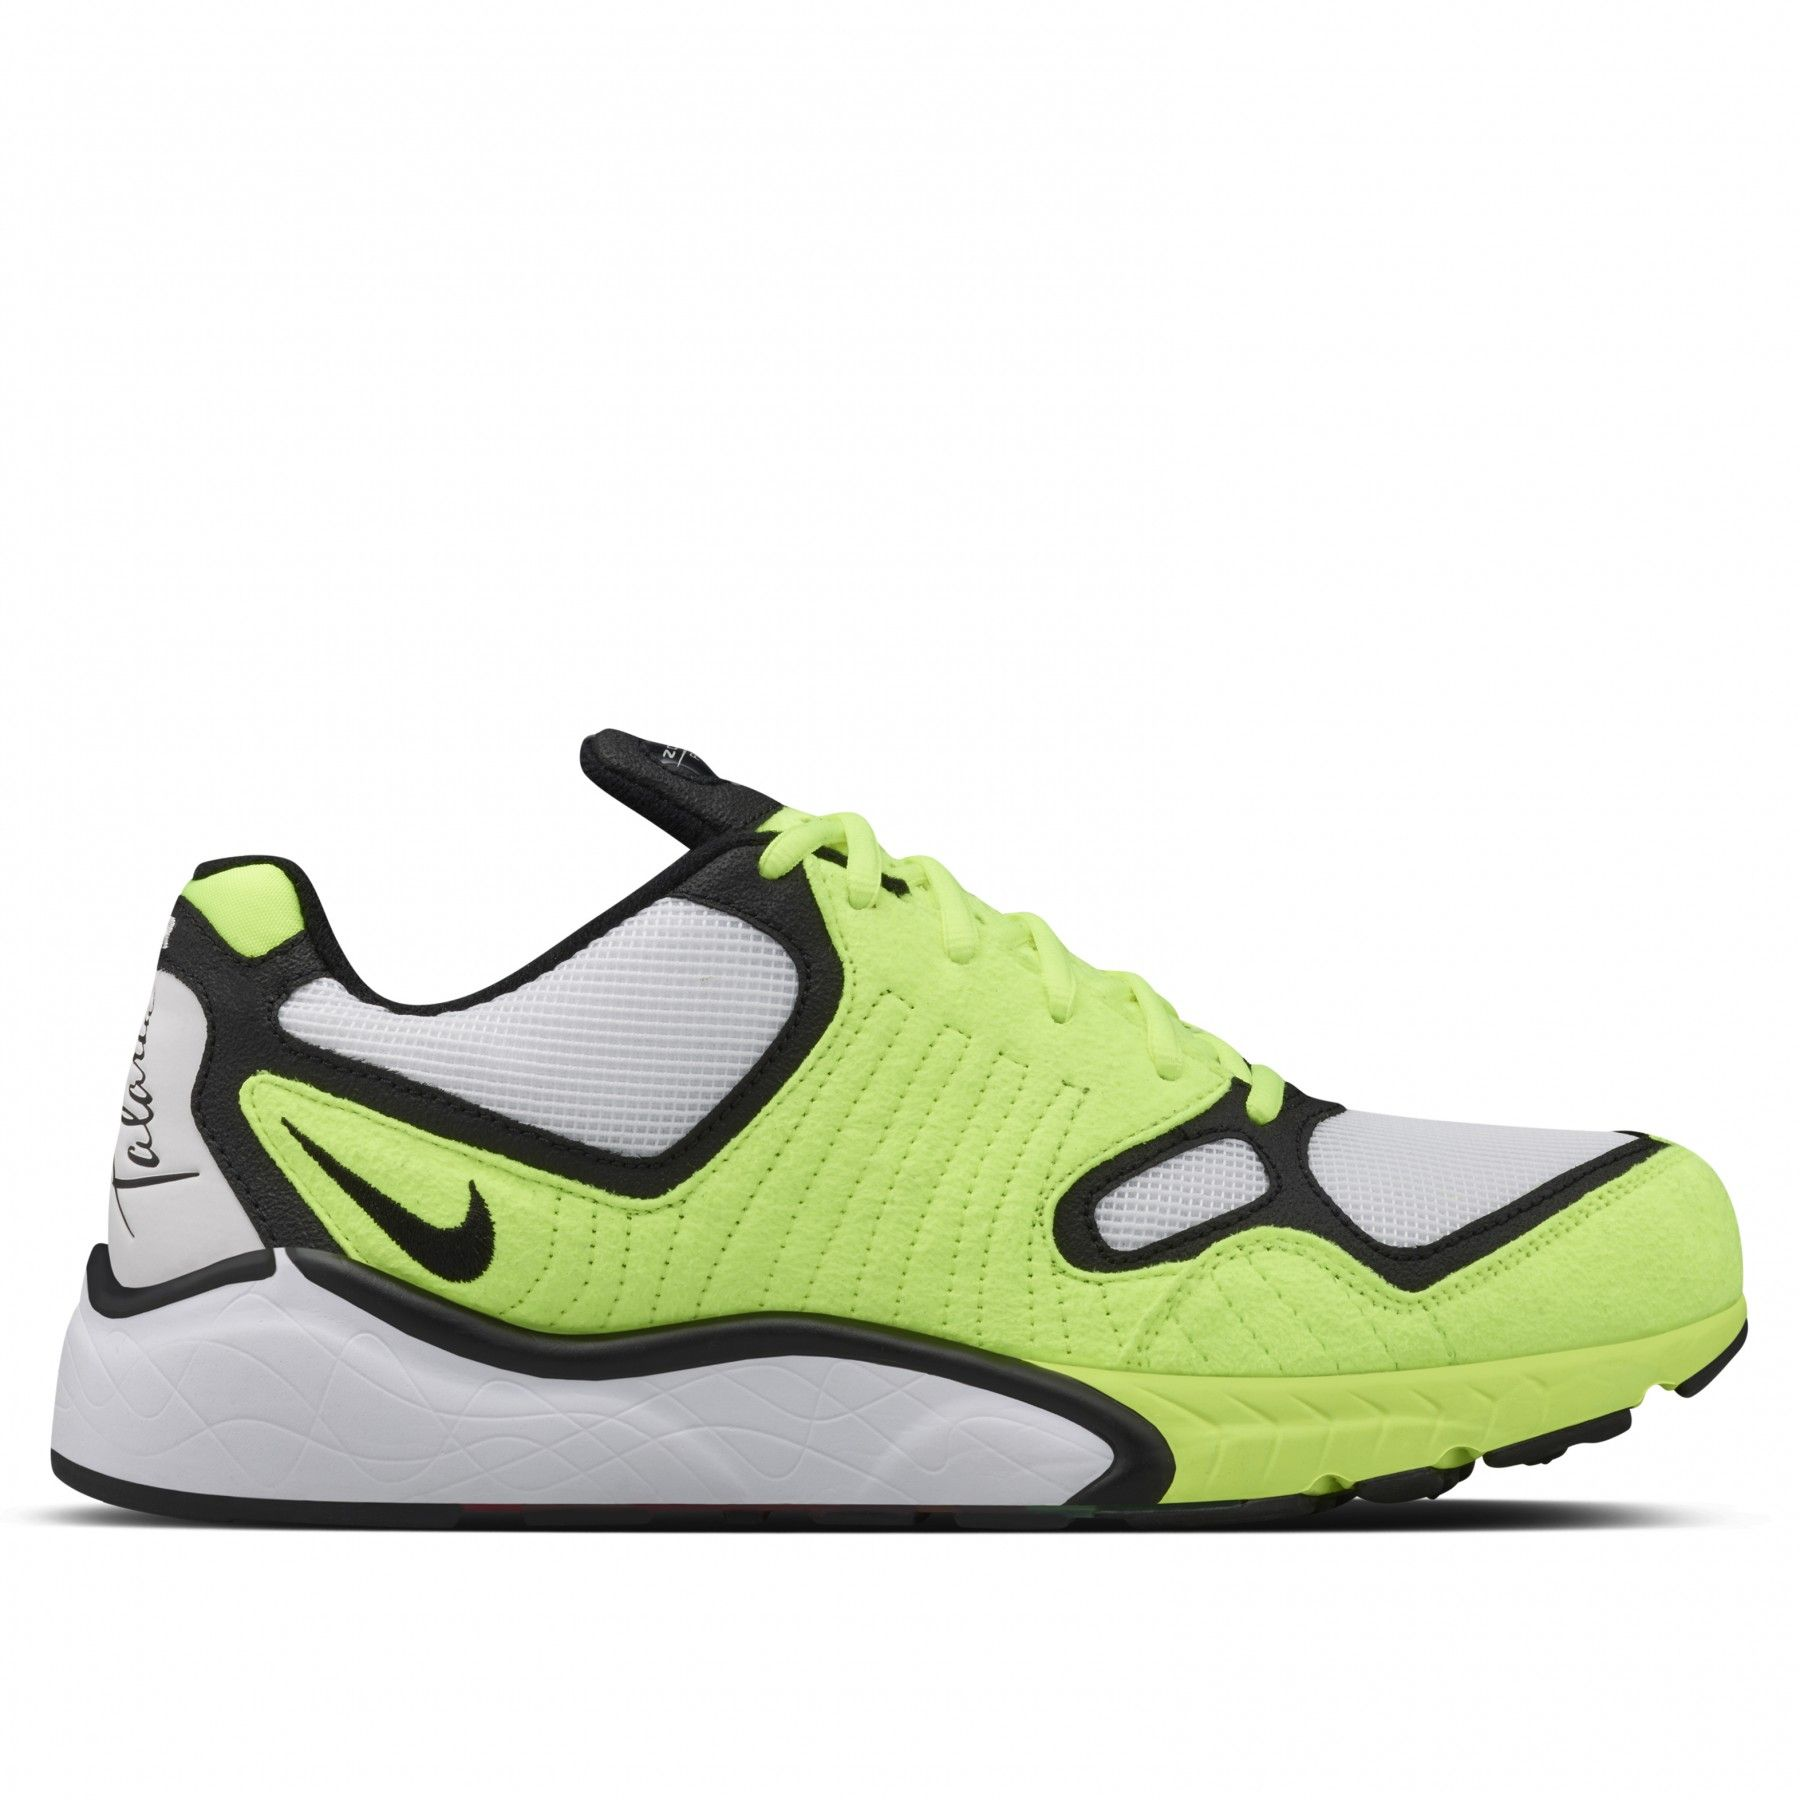 super popular 8d2c9 21556 NikeLab Air Zoom Talaria (VoltBlackWhite) New Sneakers, Sneakers Nike